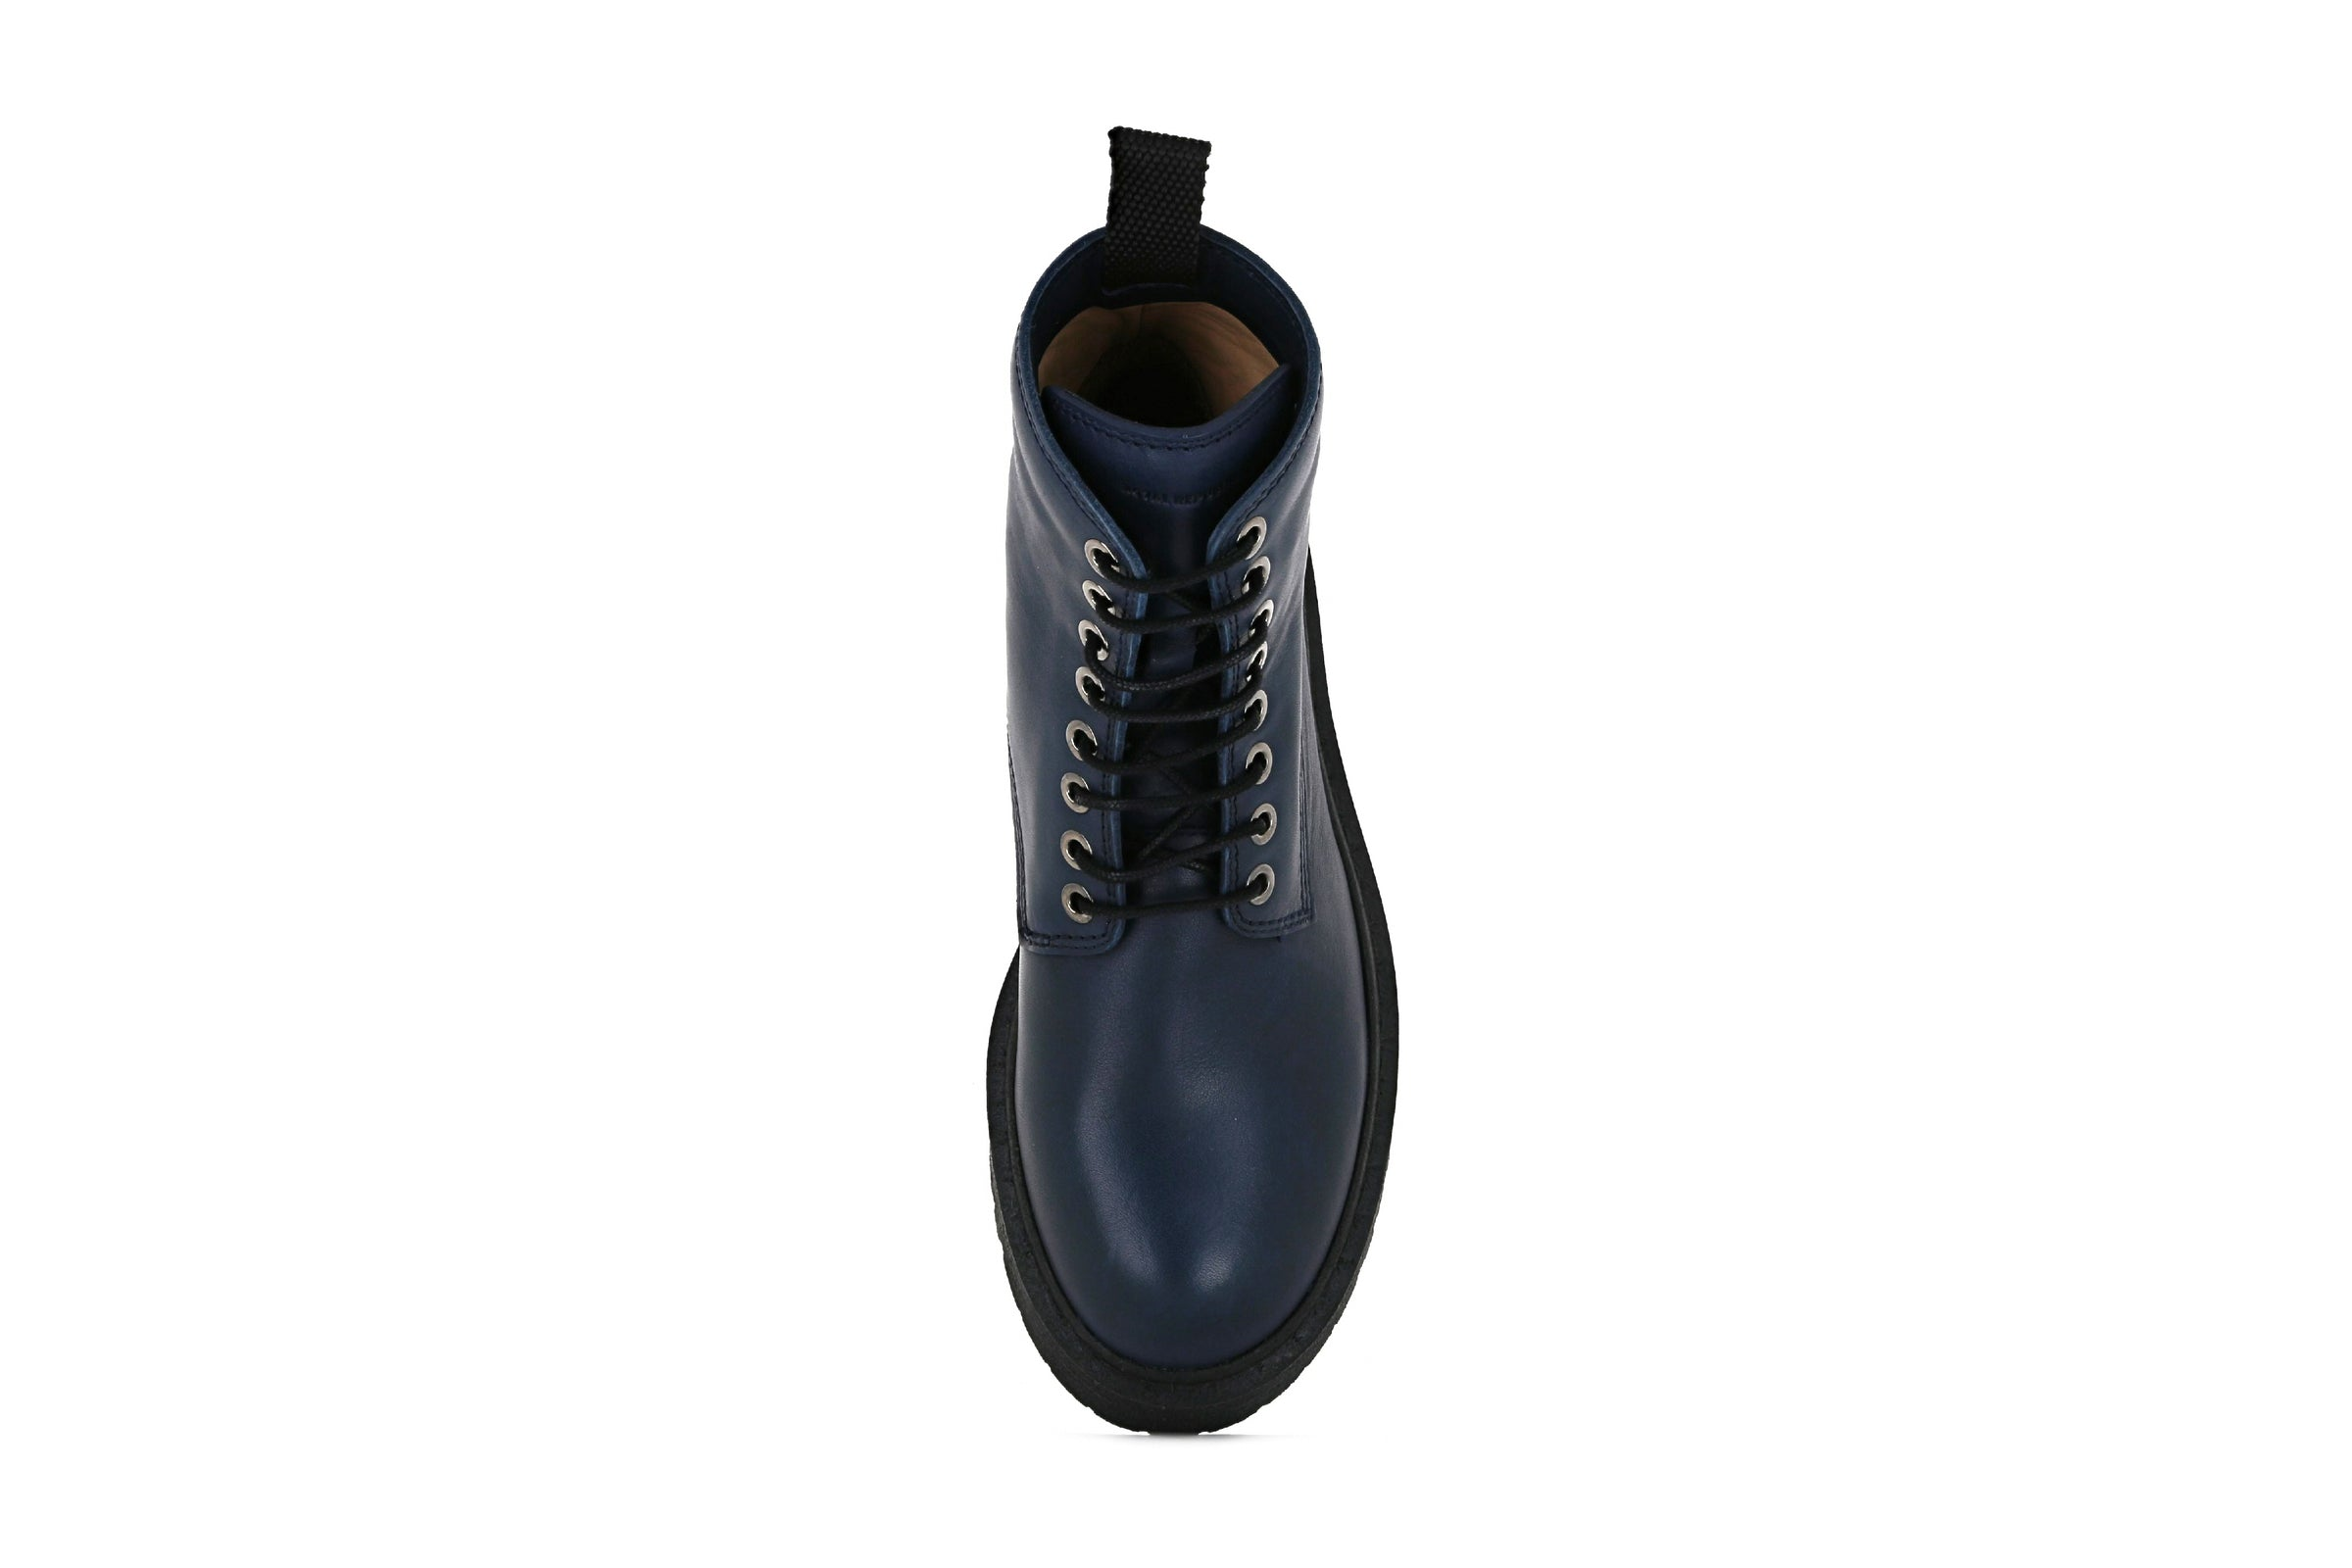 Command Lace Up Boot